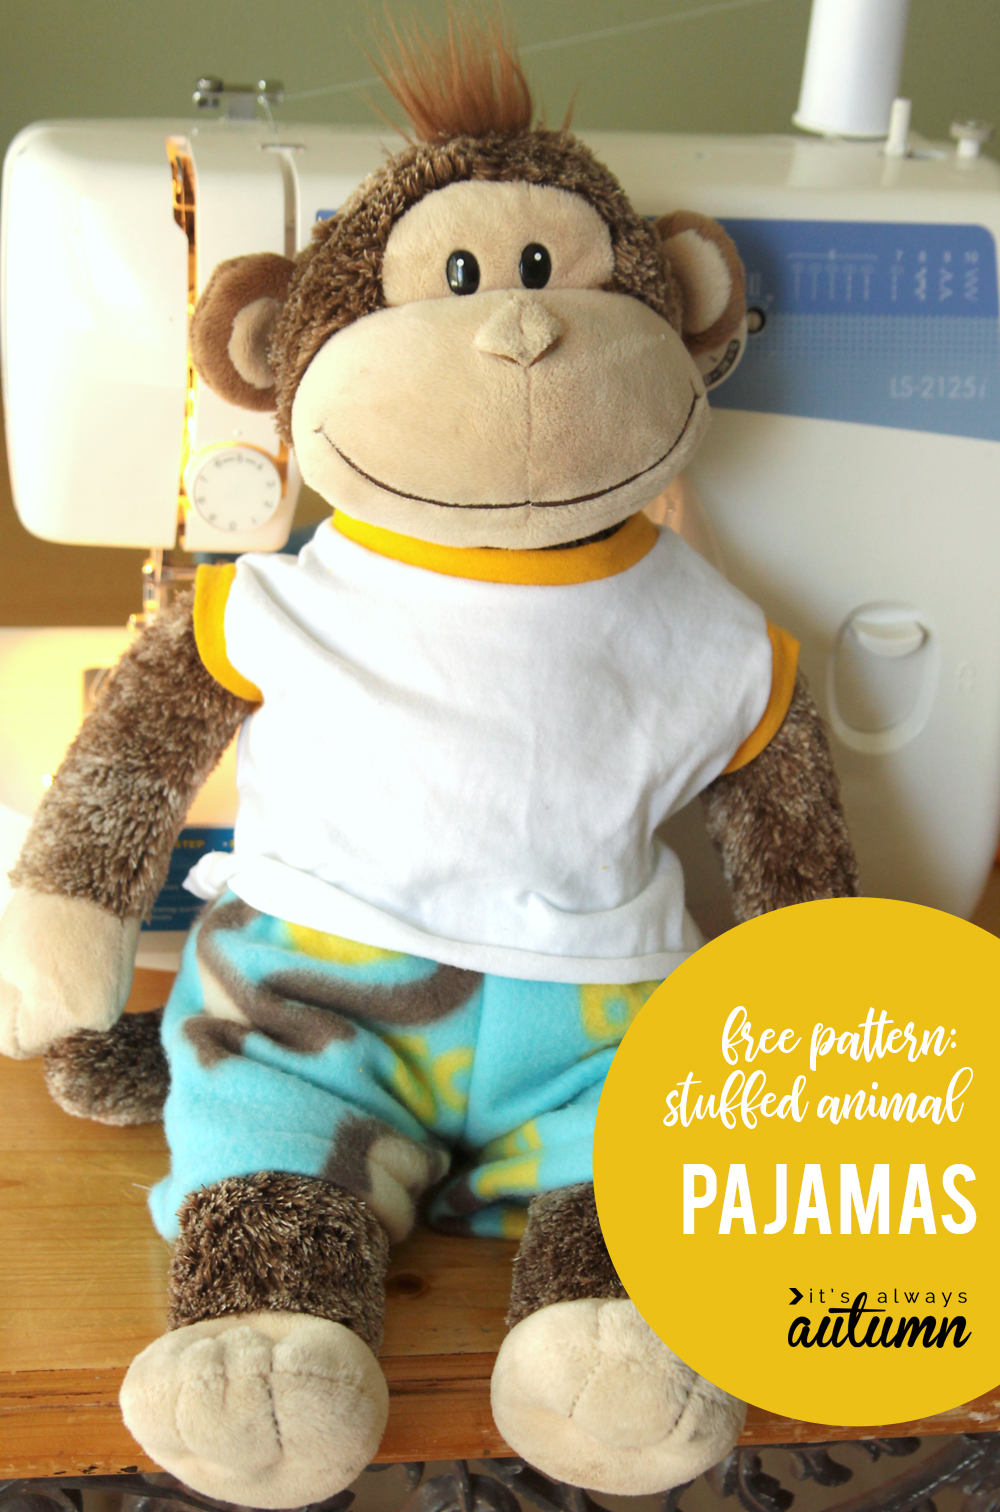 Cute sewing pattern for stuffed animal pajamas! Teddy bear pajama pattern fits Build a Bear size animals.